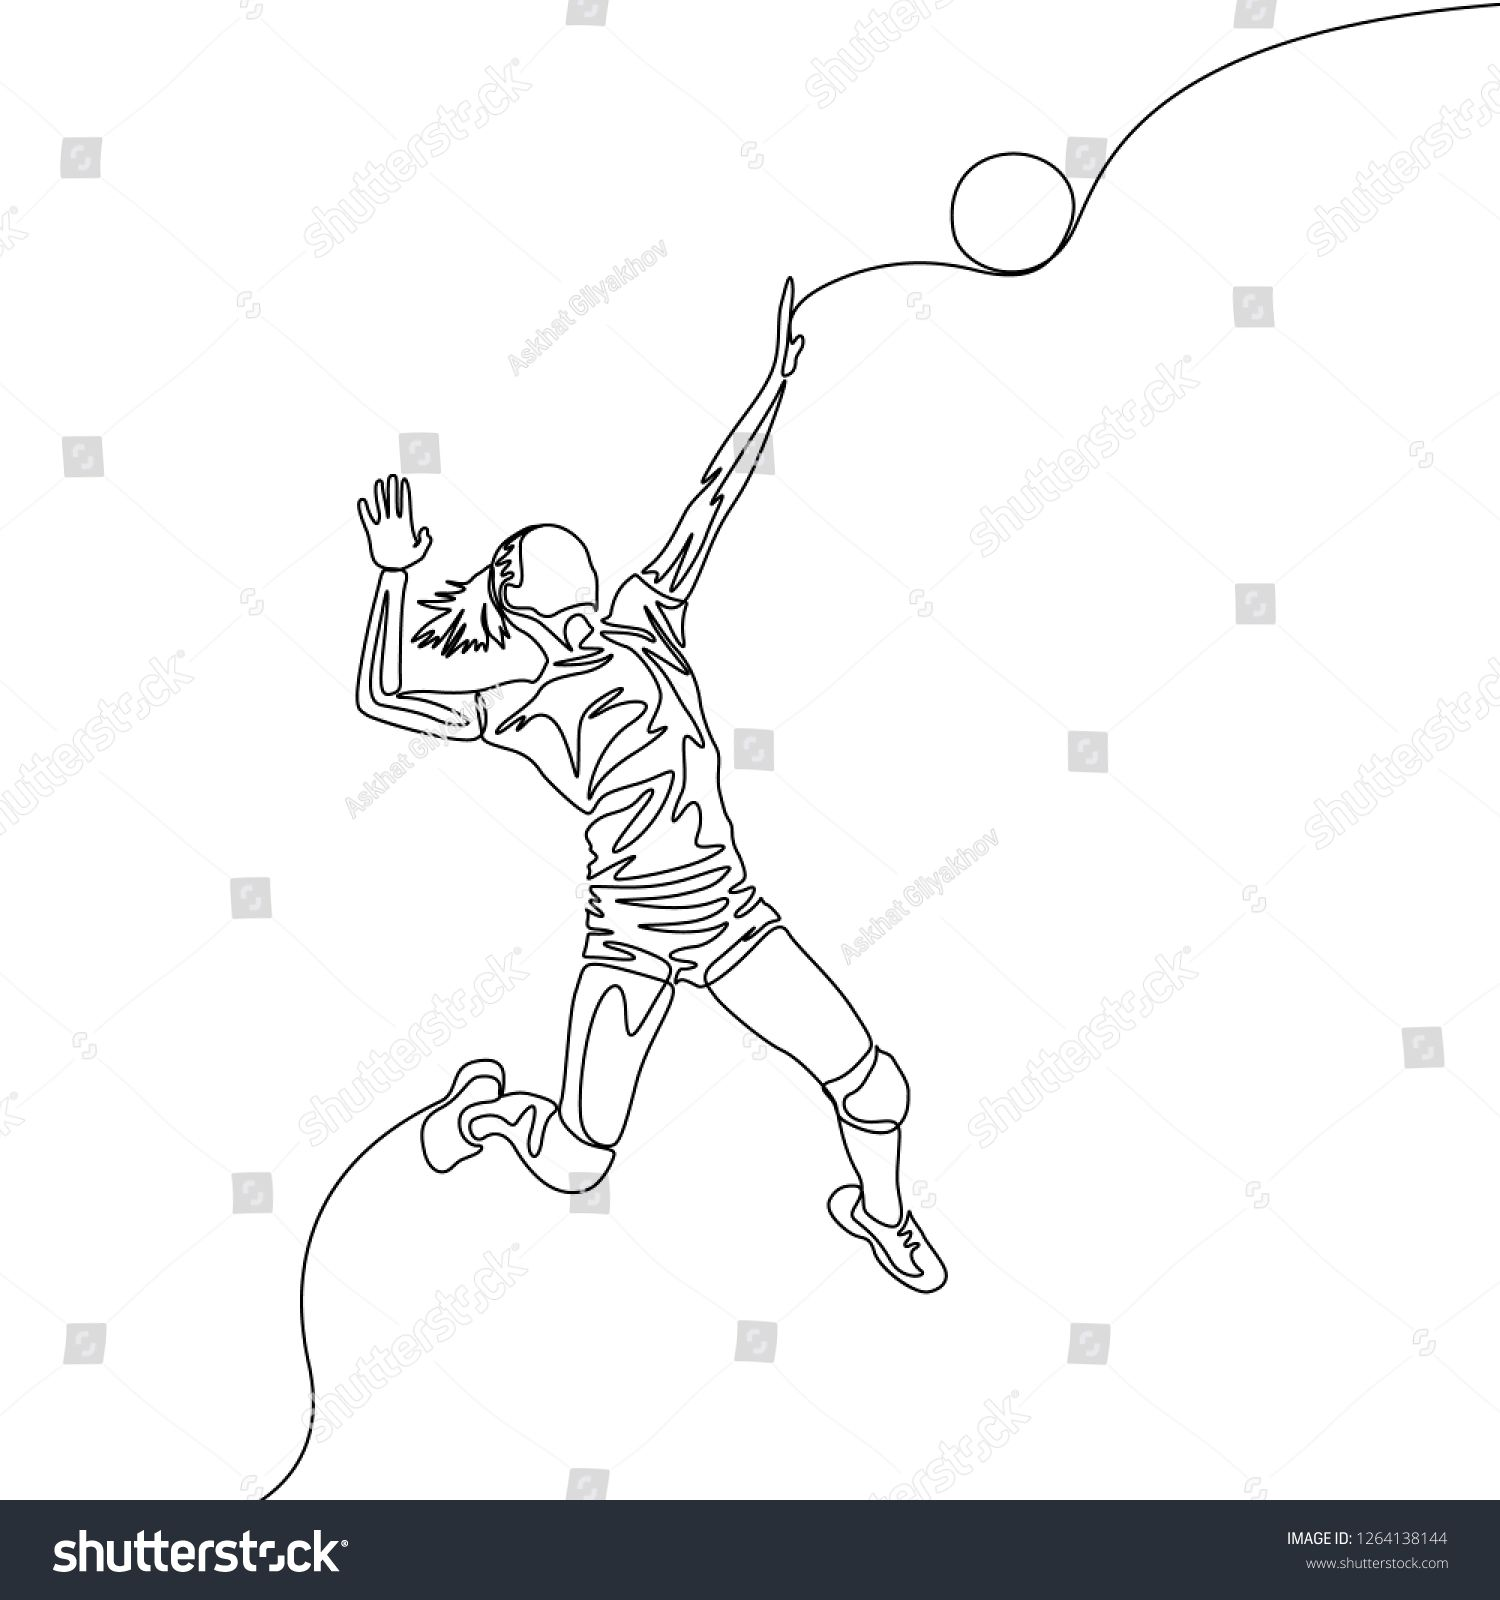 Continuous One Line Volleyball Player Woman Jumps To Throw The Ball Volleyball Theme Sport Line Art Drawings Volleyball Drawing Drawings